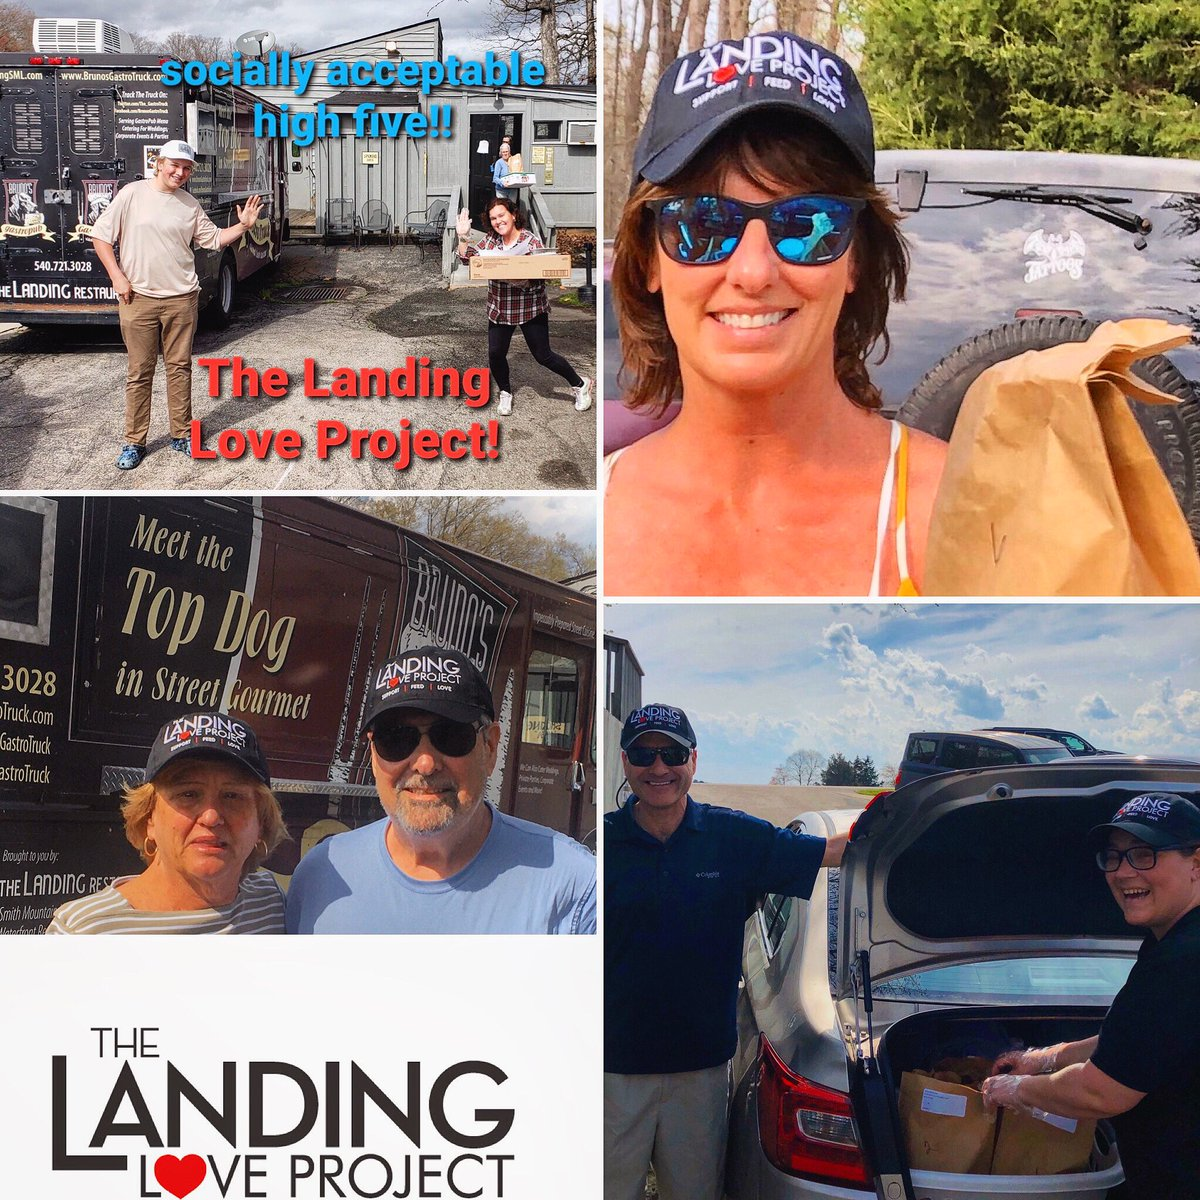 """""""The greatness of a community is most accurately measured by the compassionate actions of its members"""" - Coretta Scott King.  Today 300 meals to 68 families. #thelandingloveproject #spreadlove #community #strongertogether #SML #inthistogether #va #swva #chefsforamerica"""